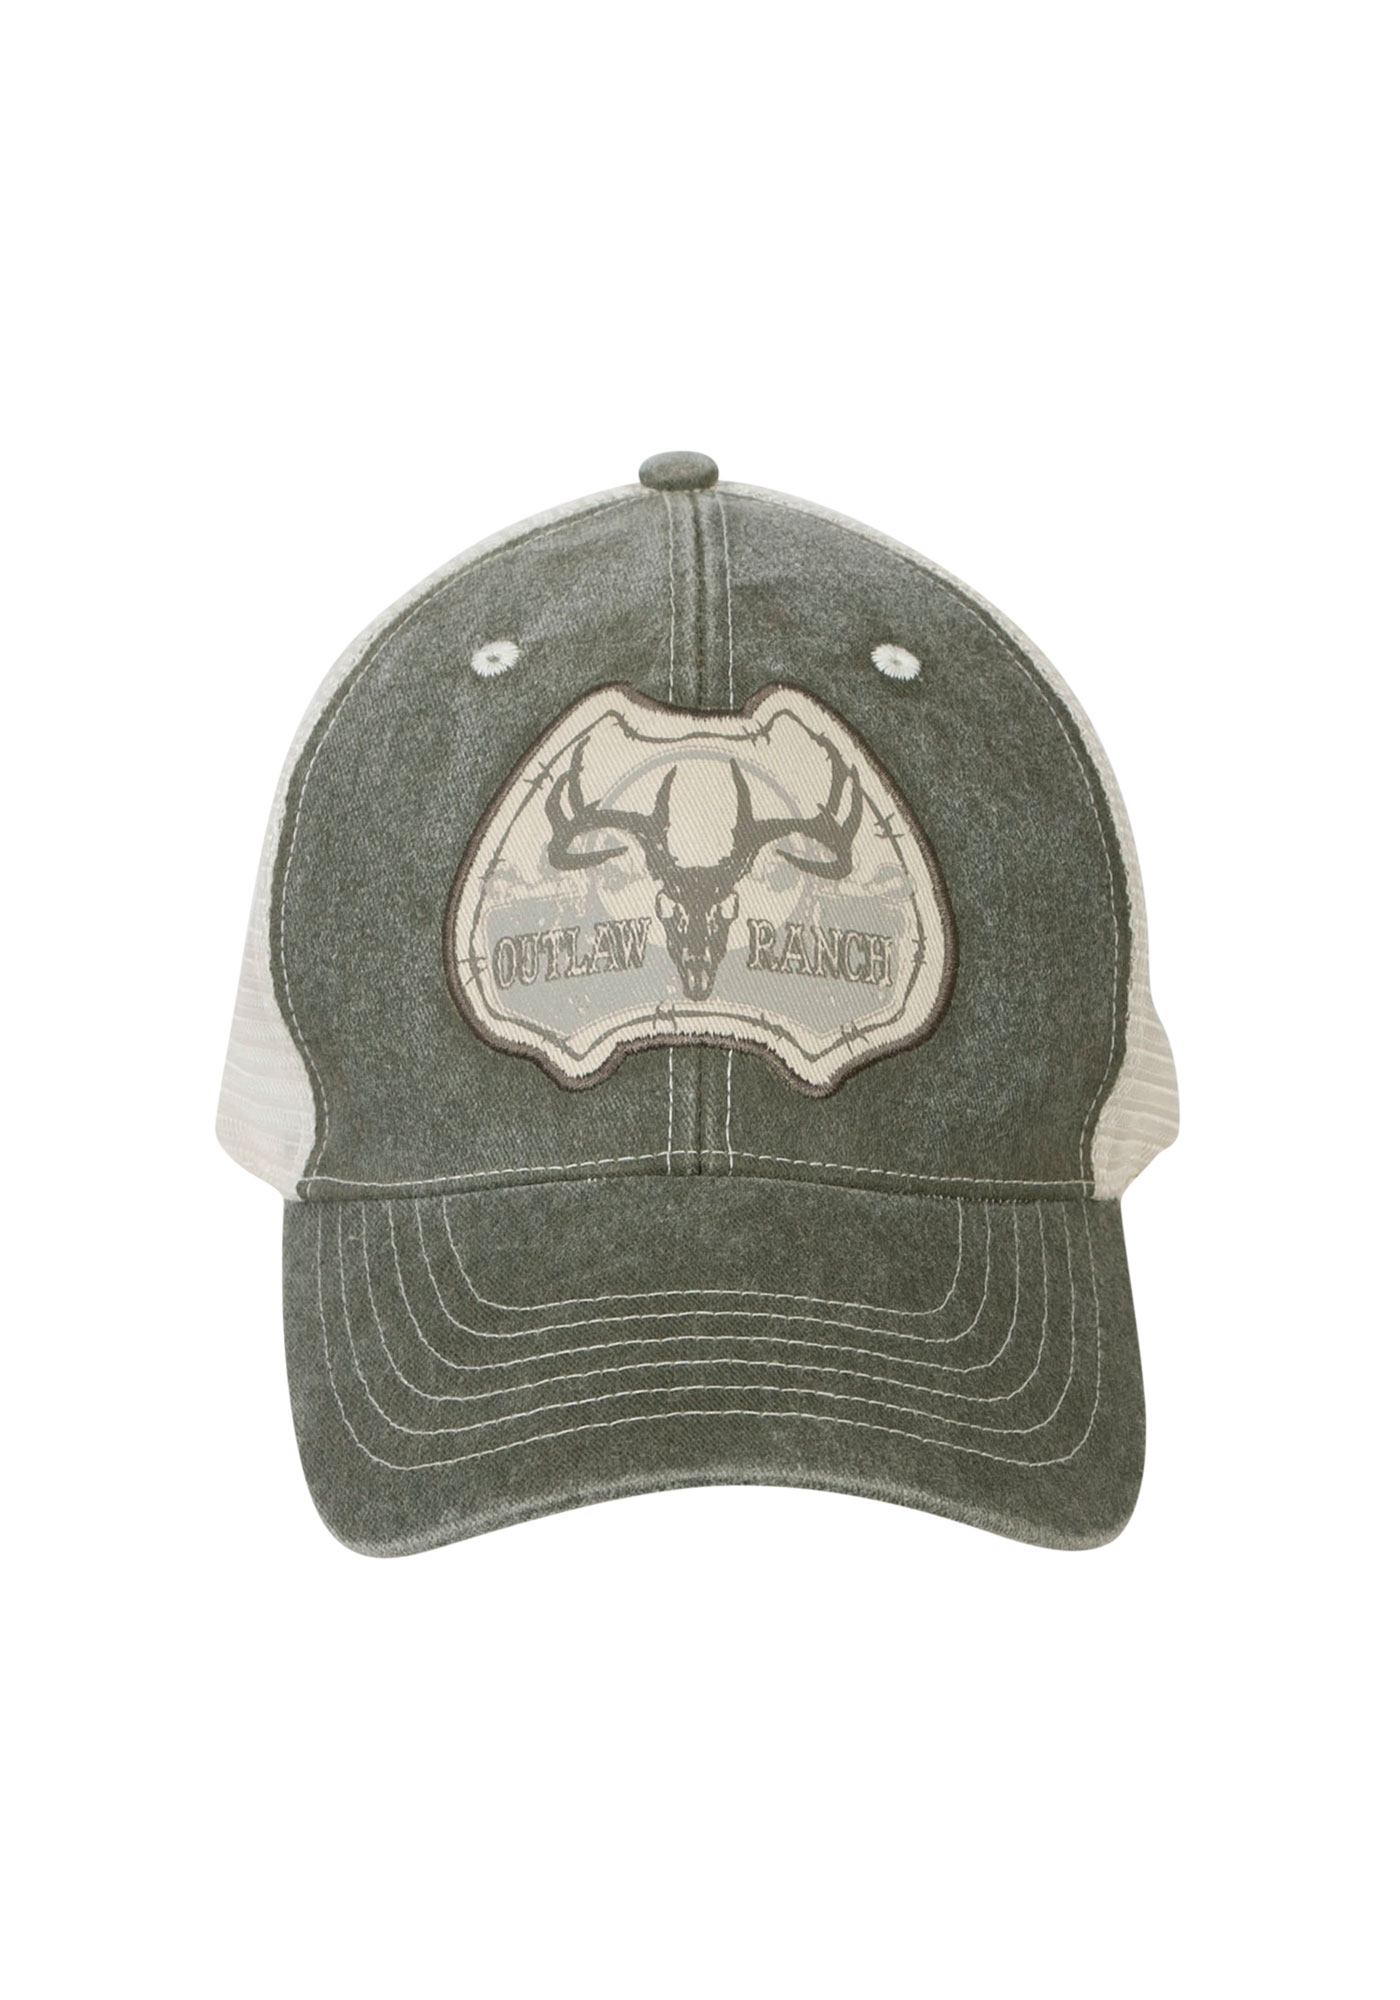 45ed88a7f74f5 Outlaw Ranch Trucker Hat